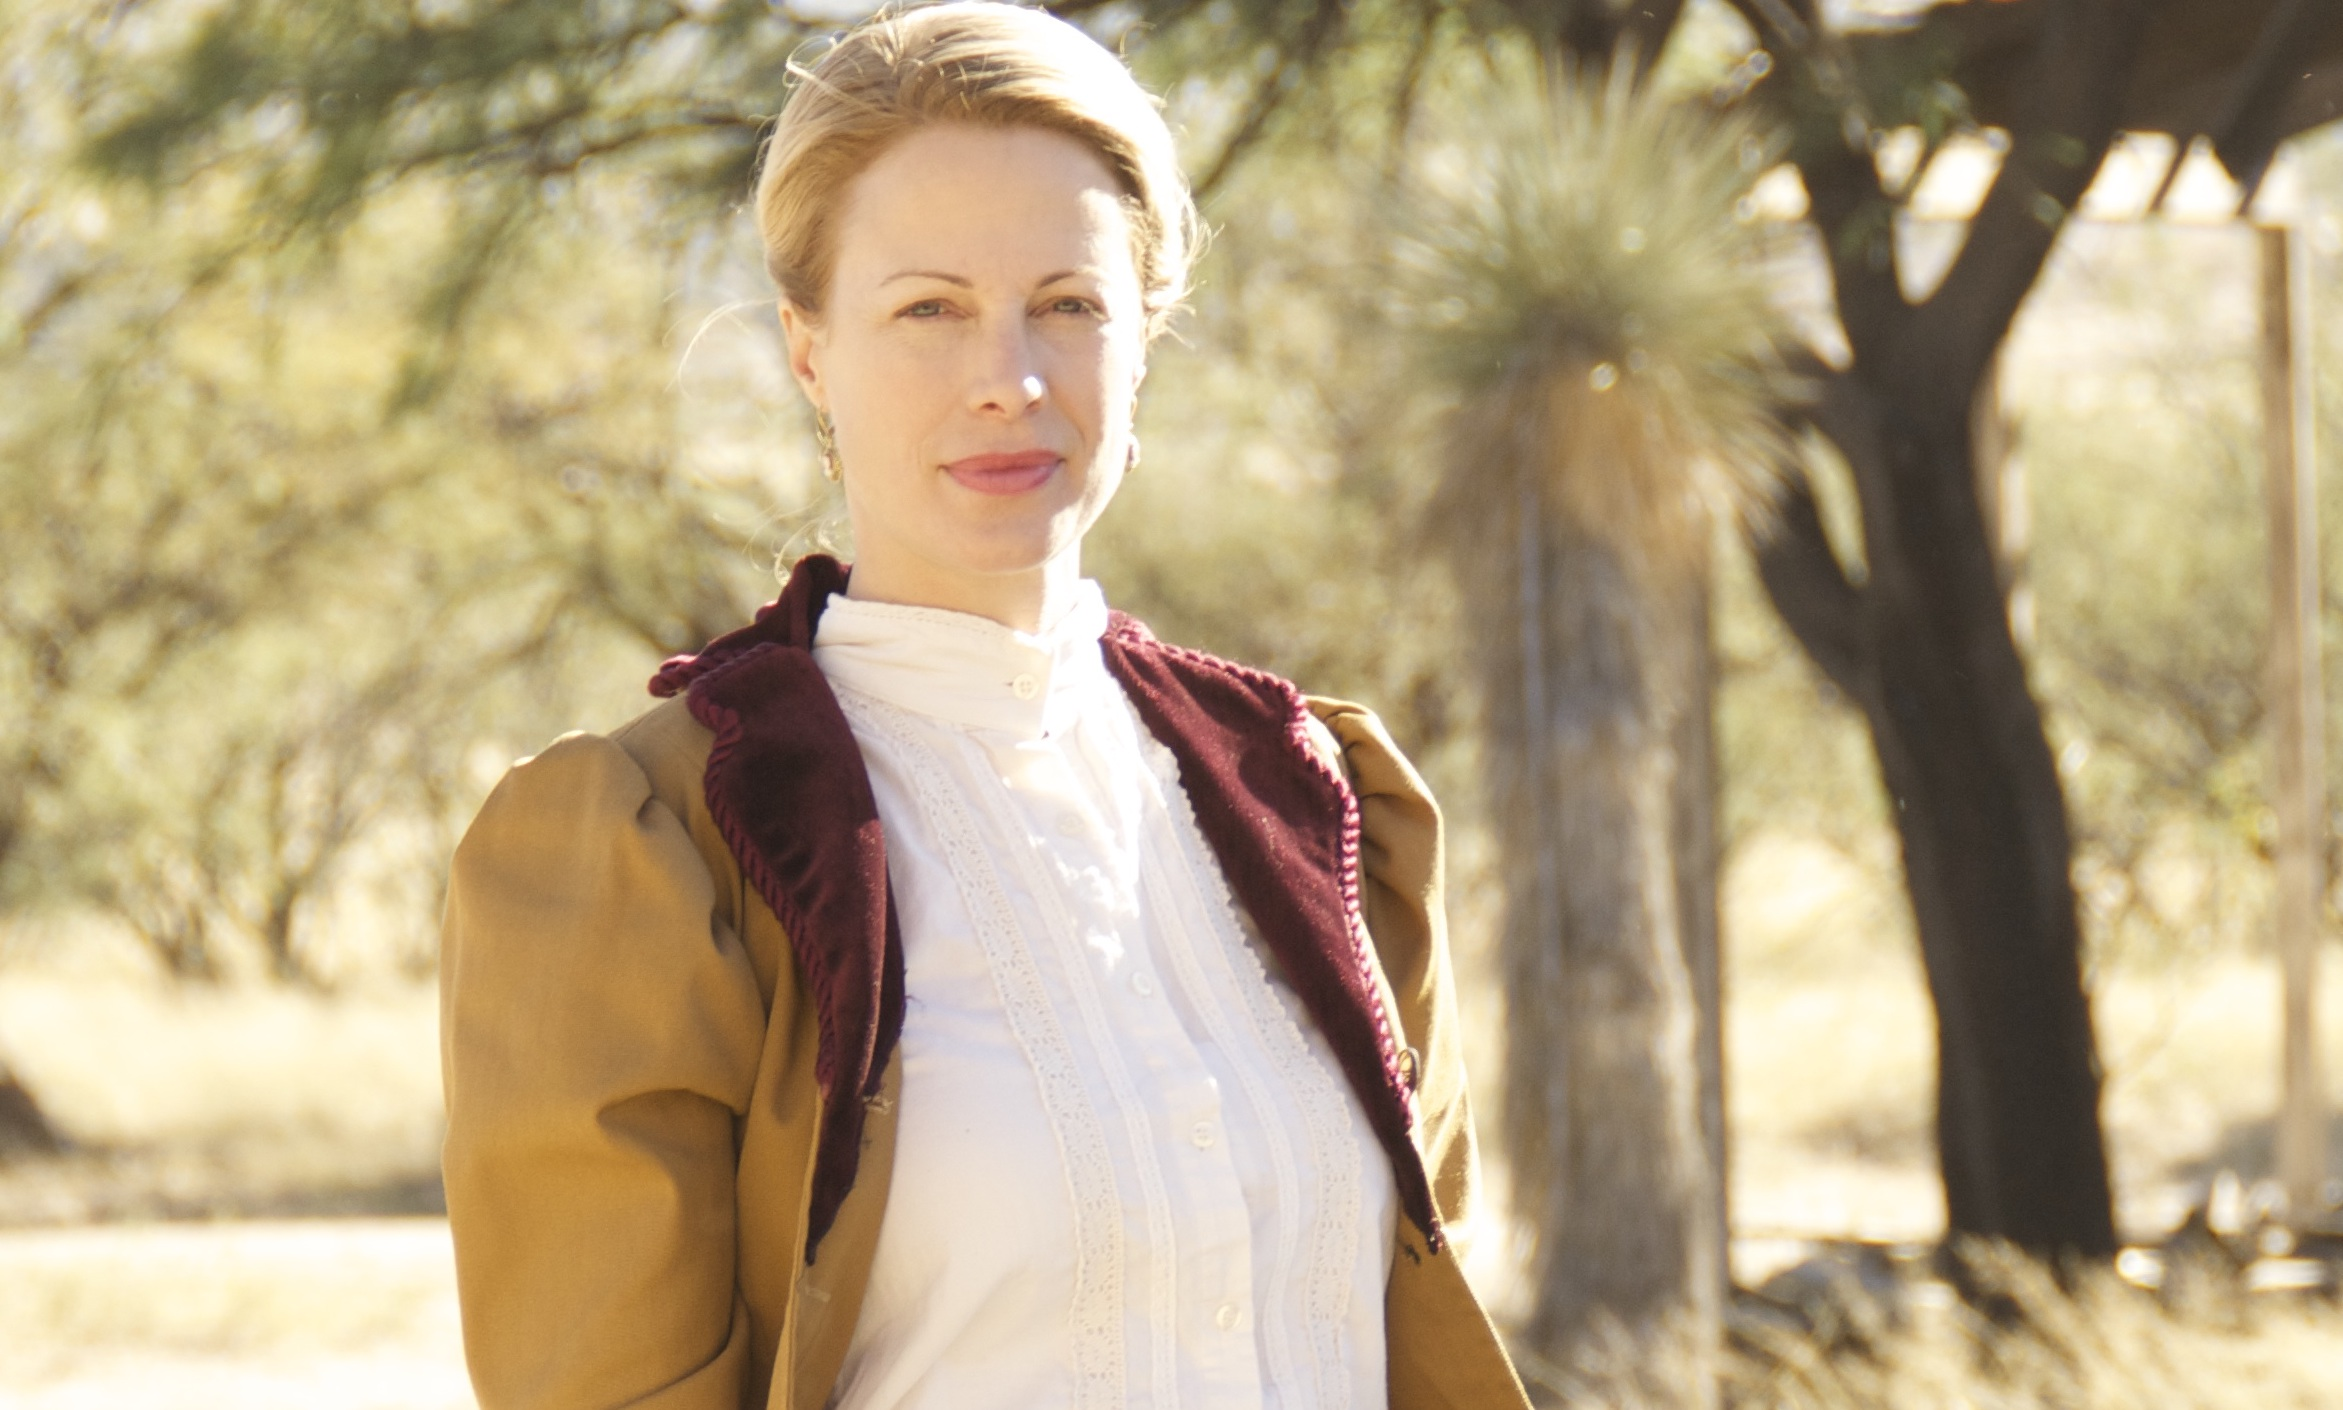 Alison Eastwood as Dr. Elizabeth Reed